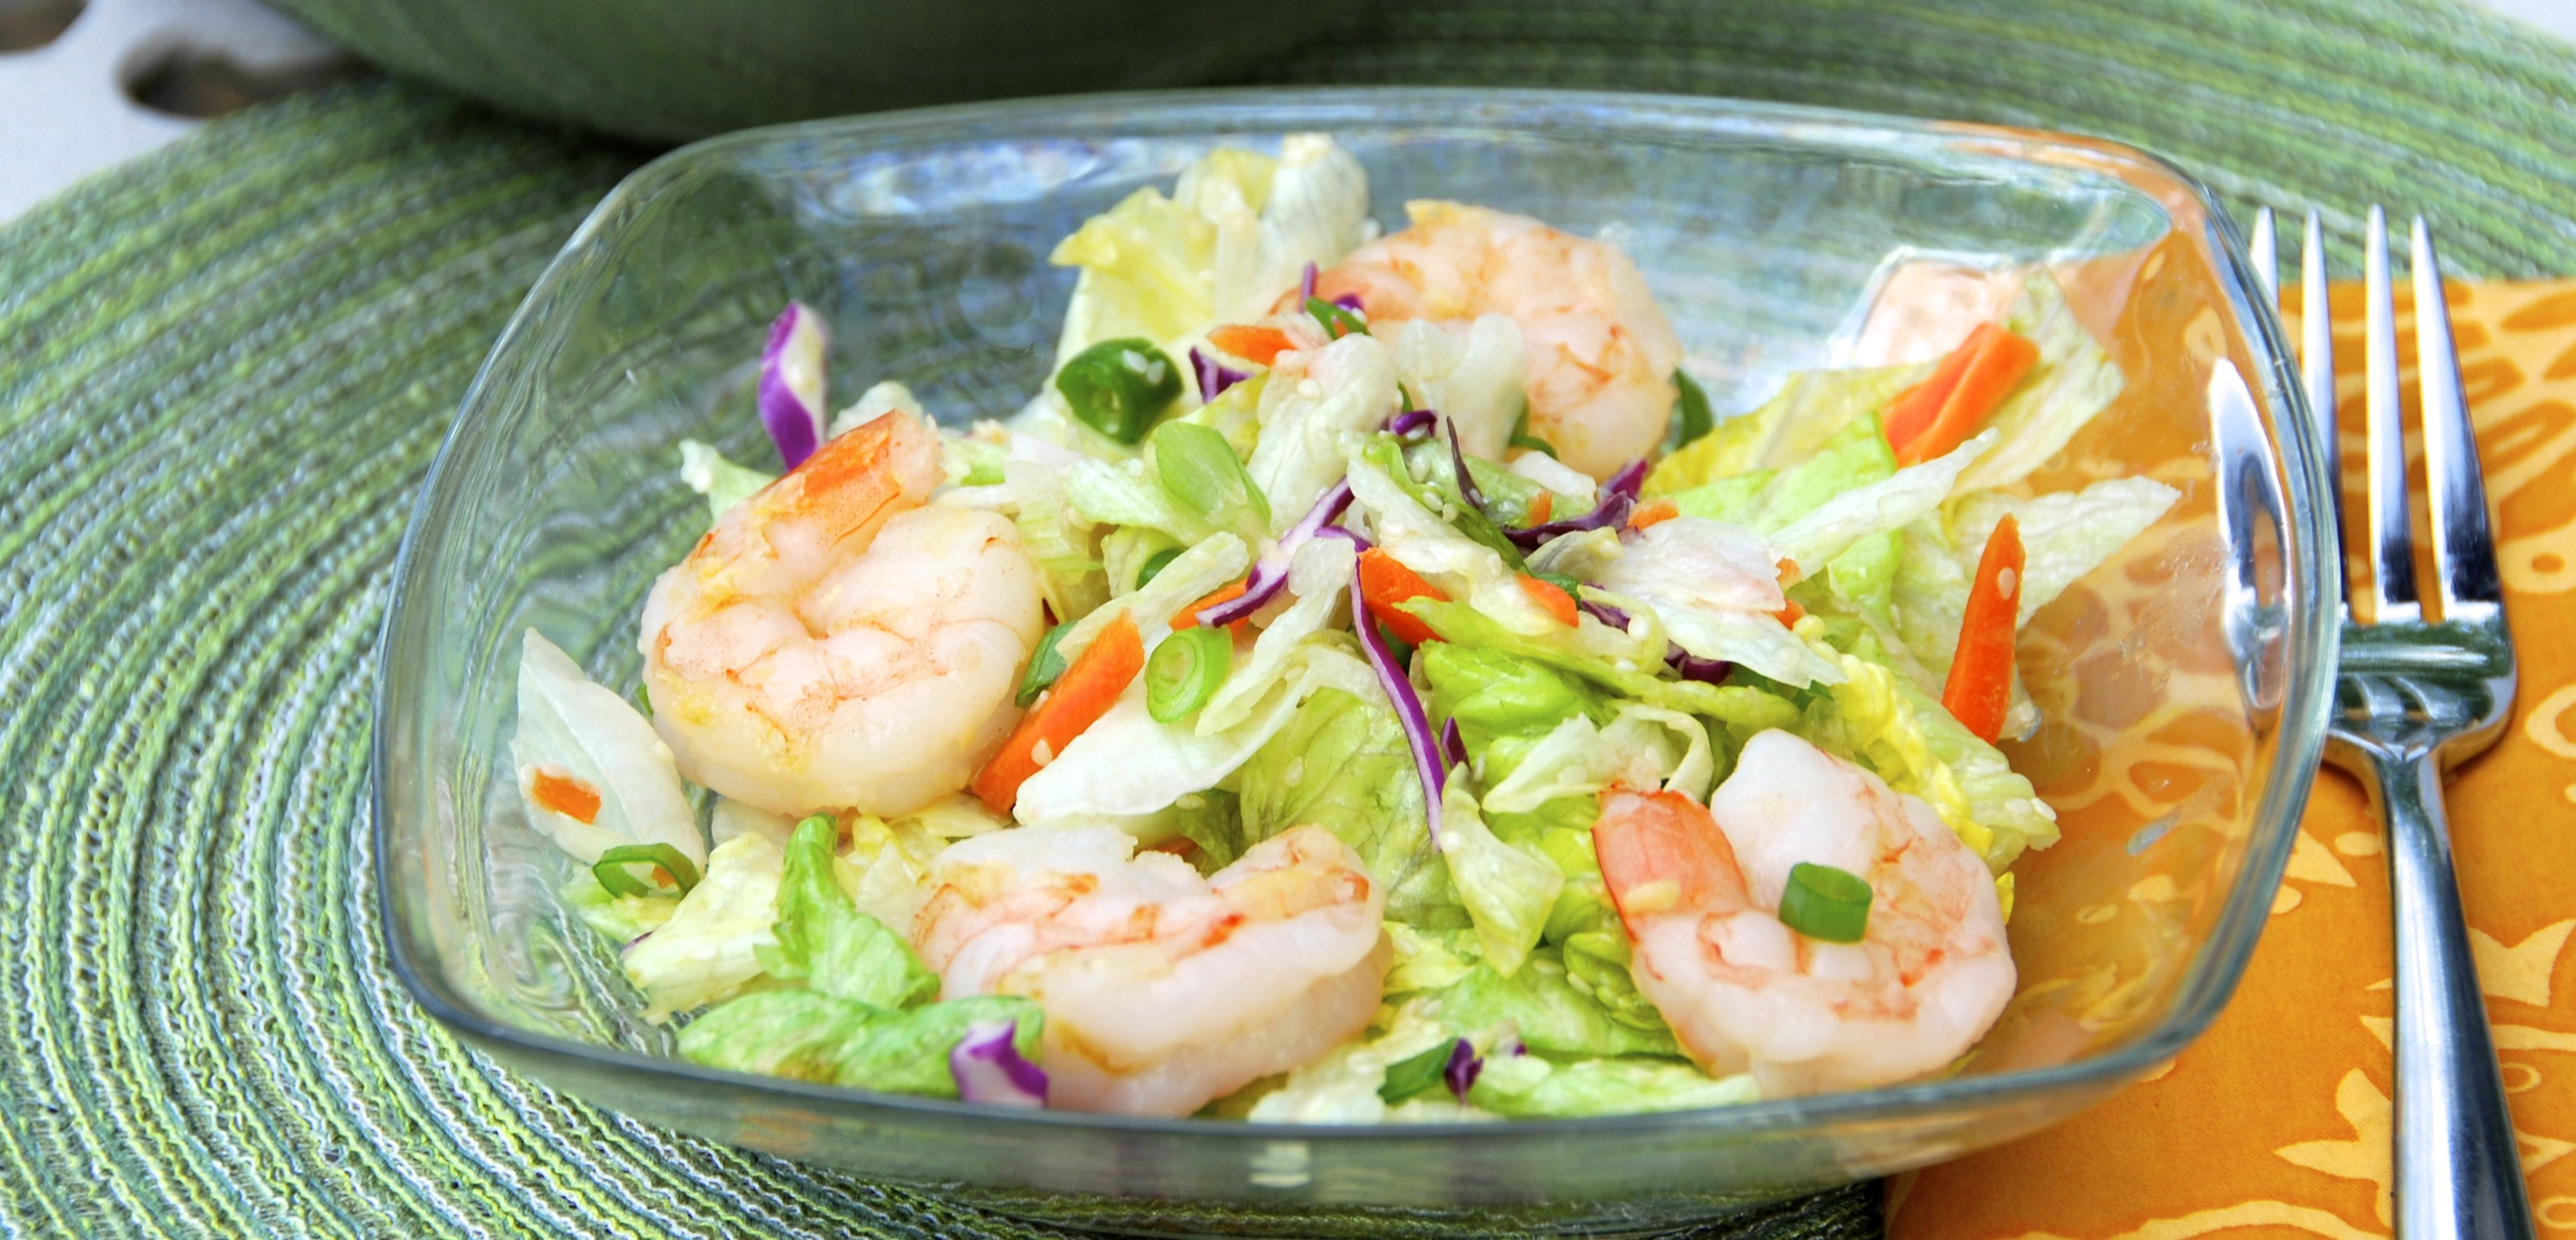 Grilled Shrimp Salad with Green Tea Citrus Dressing